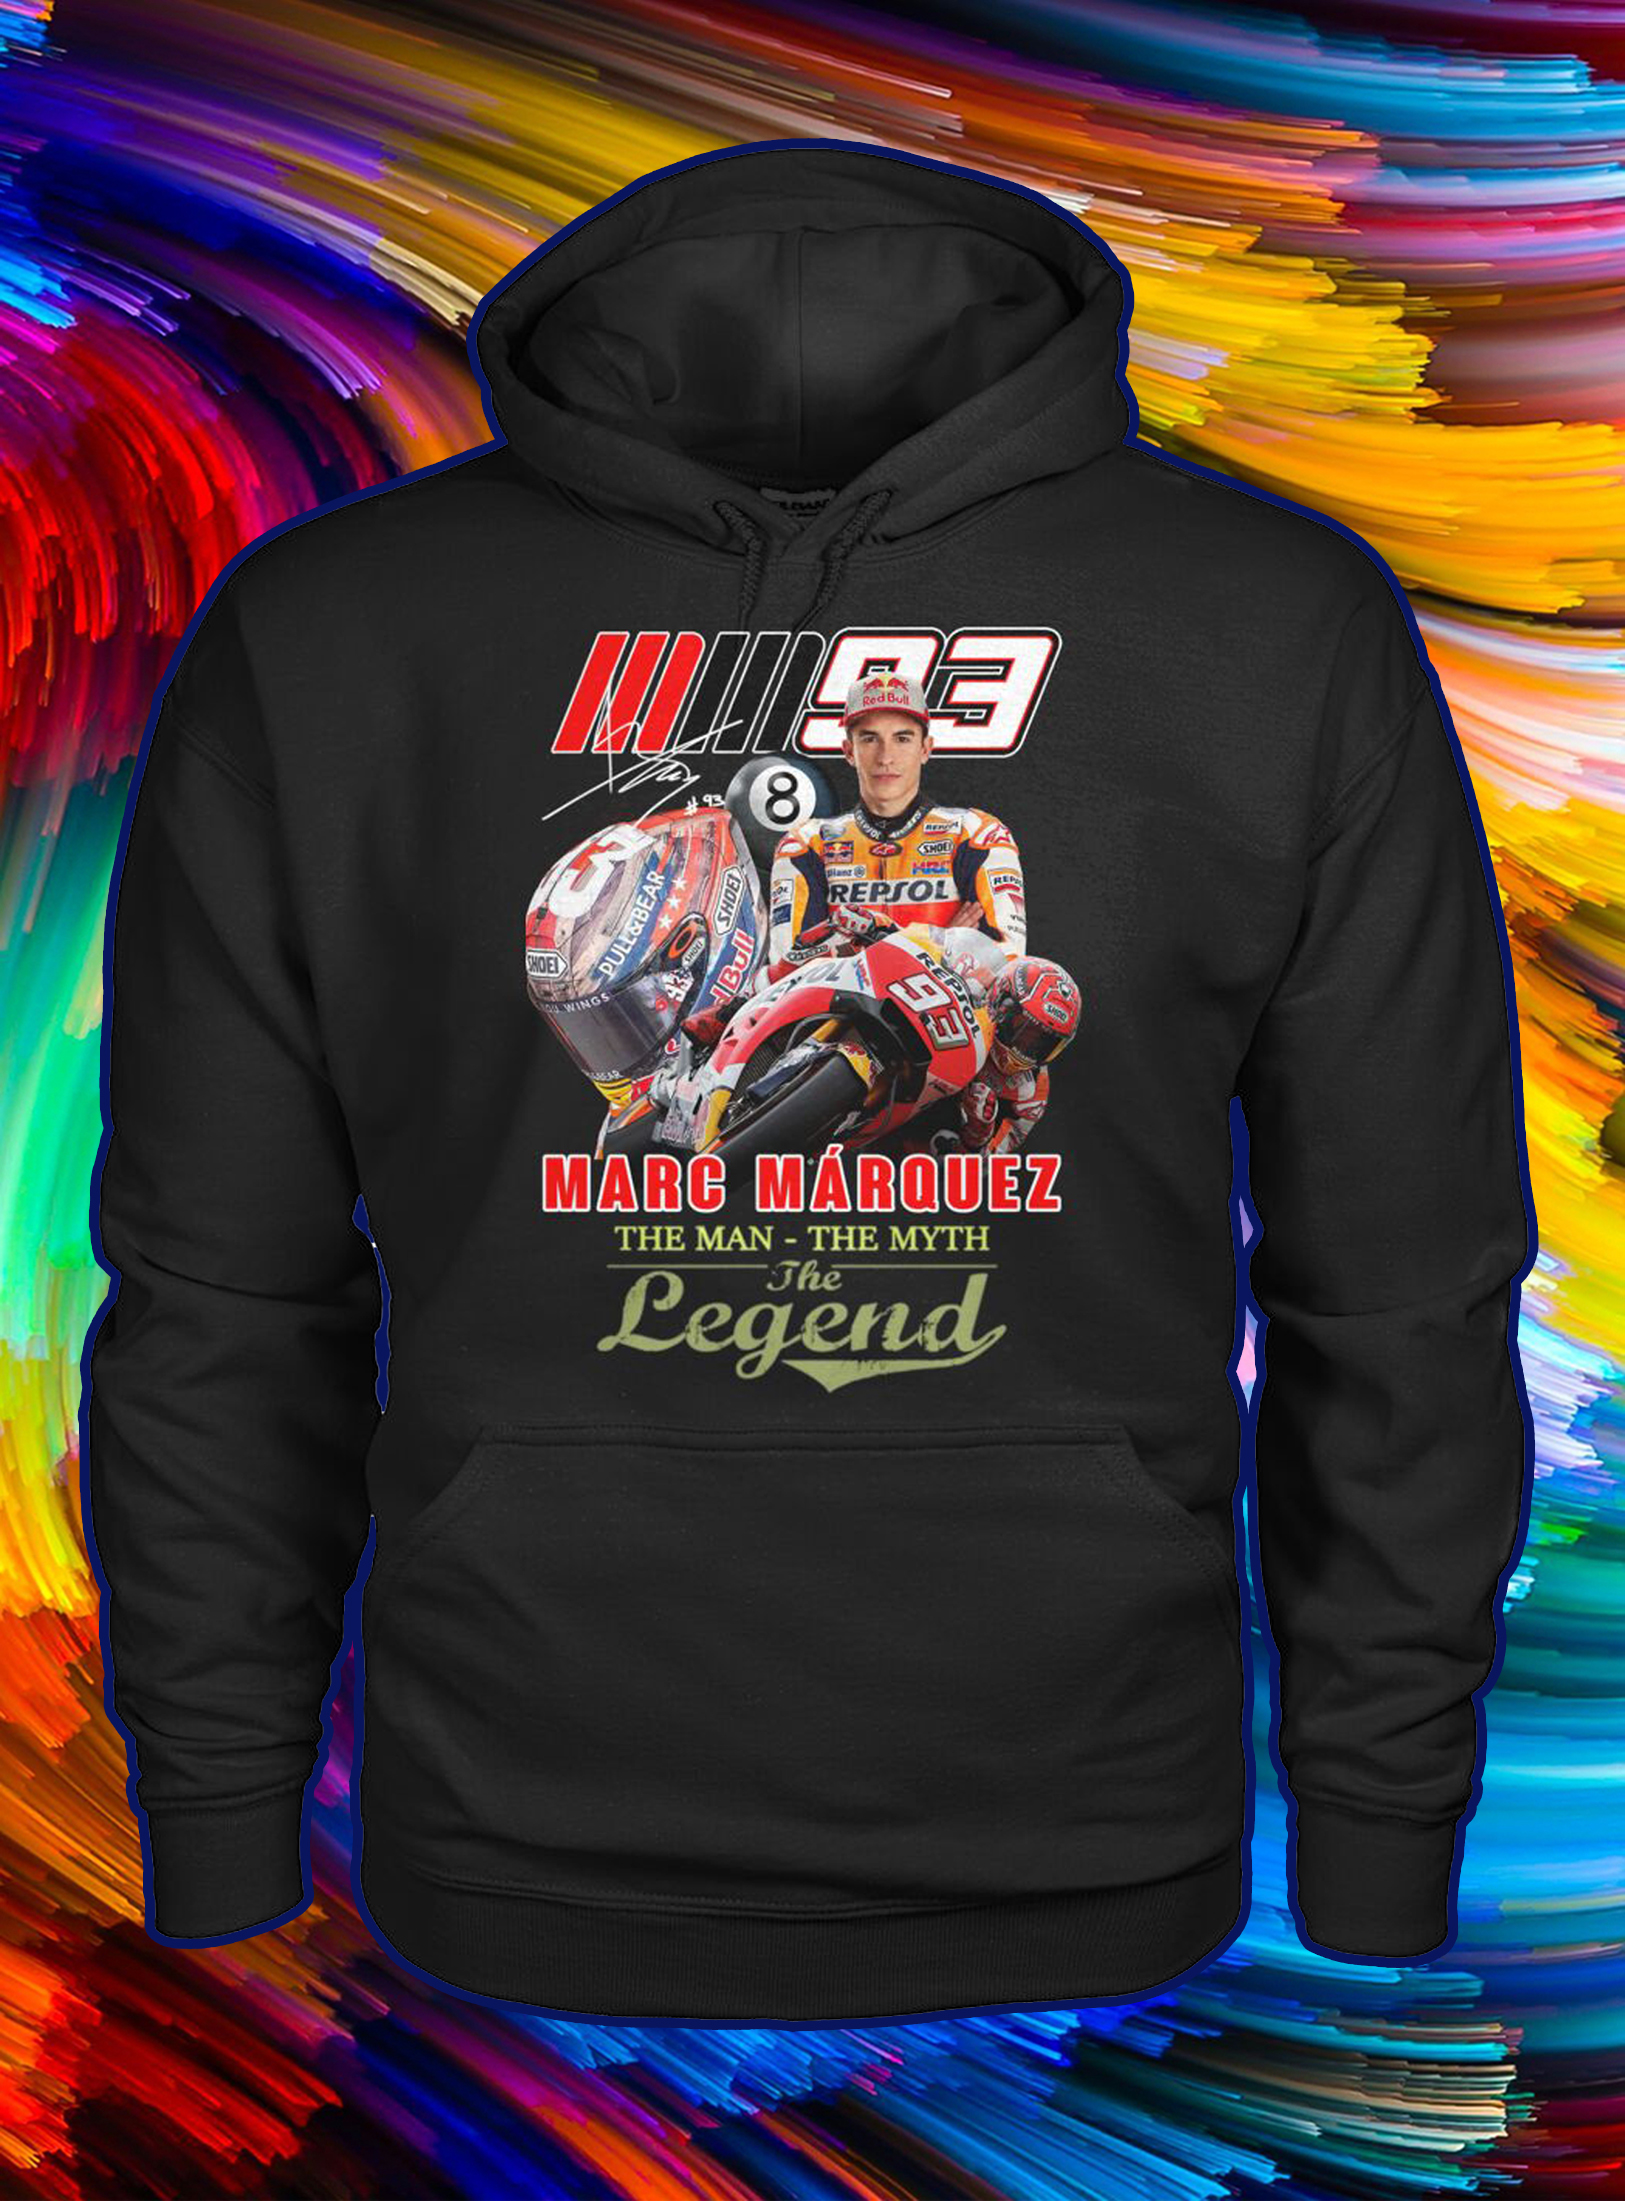 Marc marquez the man the myth the legend hoodie